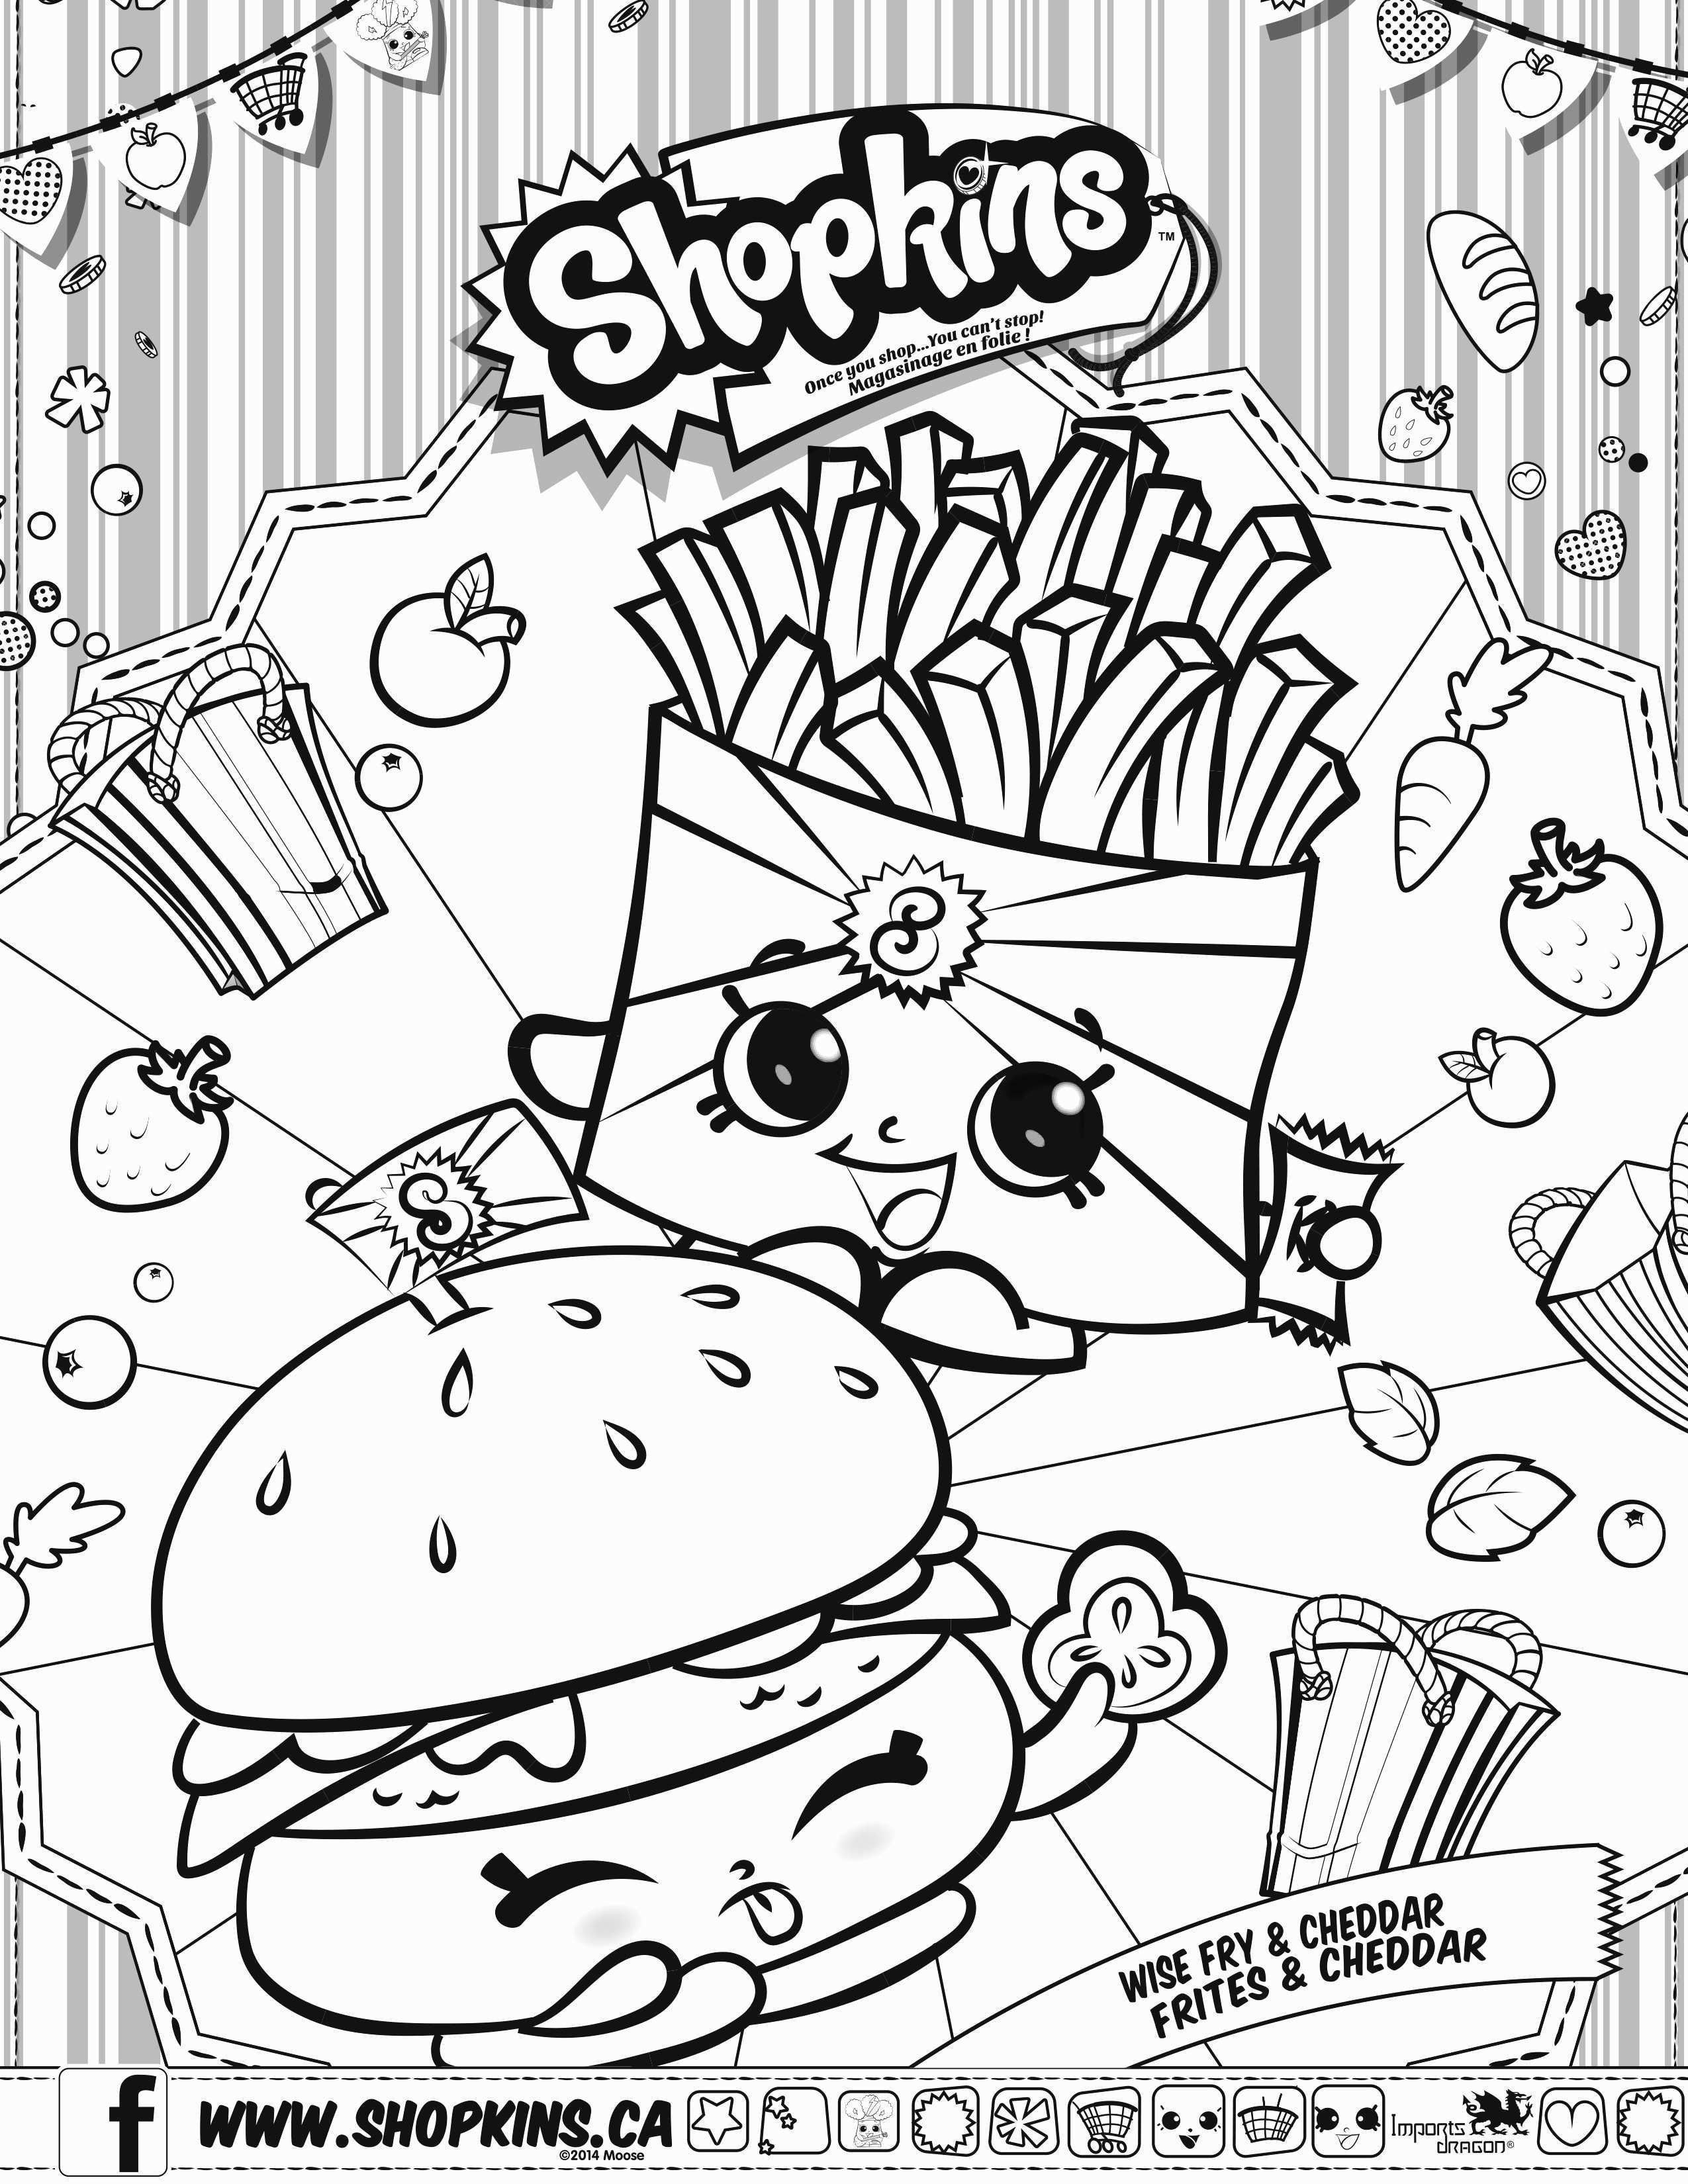 Toy Story Coloring Page Luxury Food Drive Coloring Pages